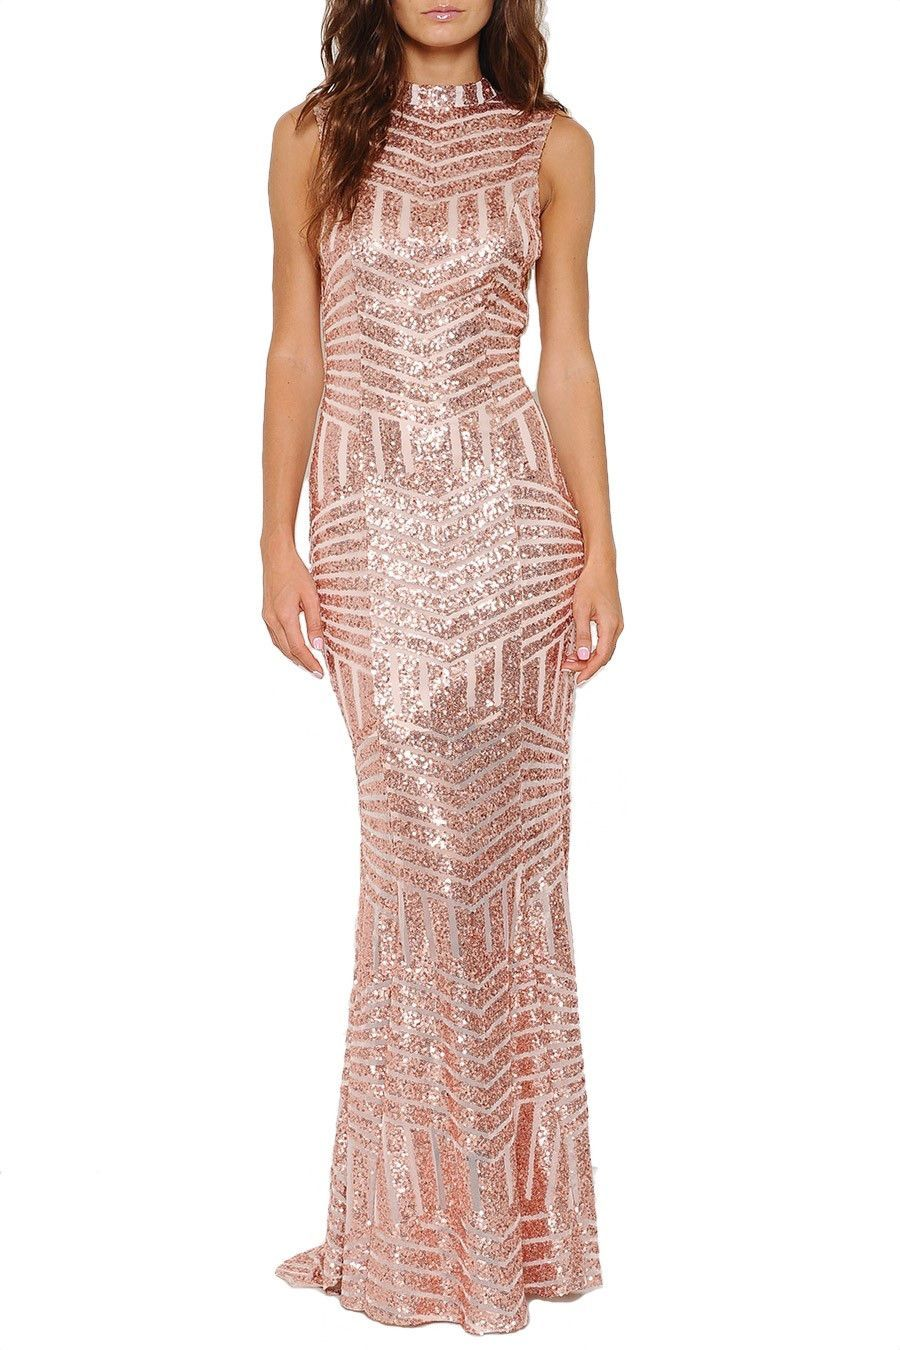 Leading lady open back sequin maxi dress rose gold restock arrives